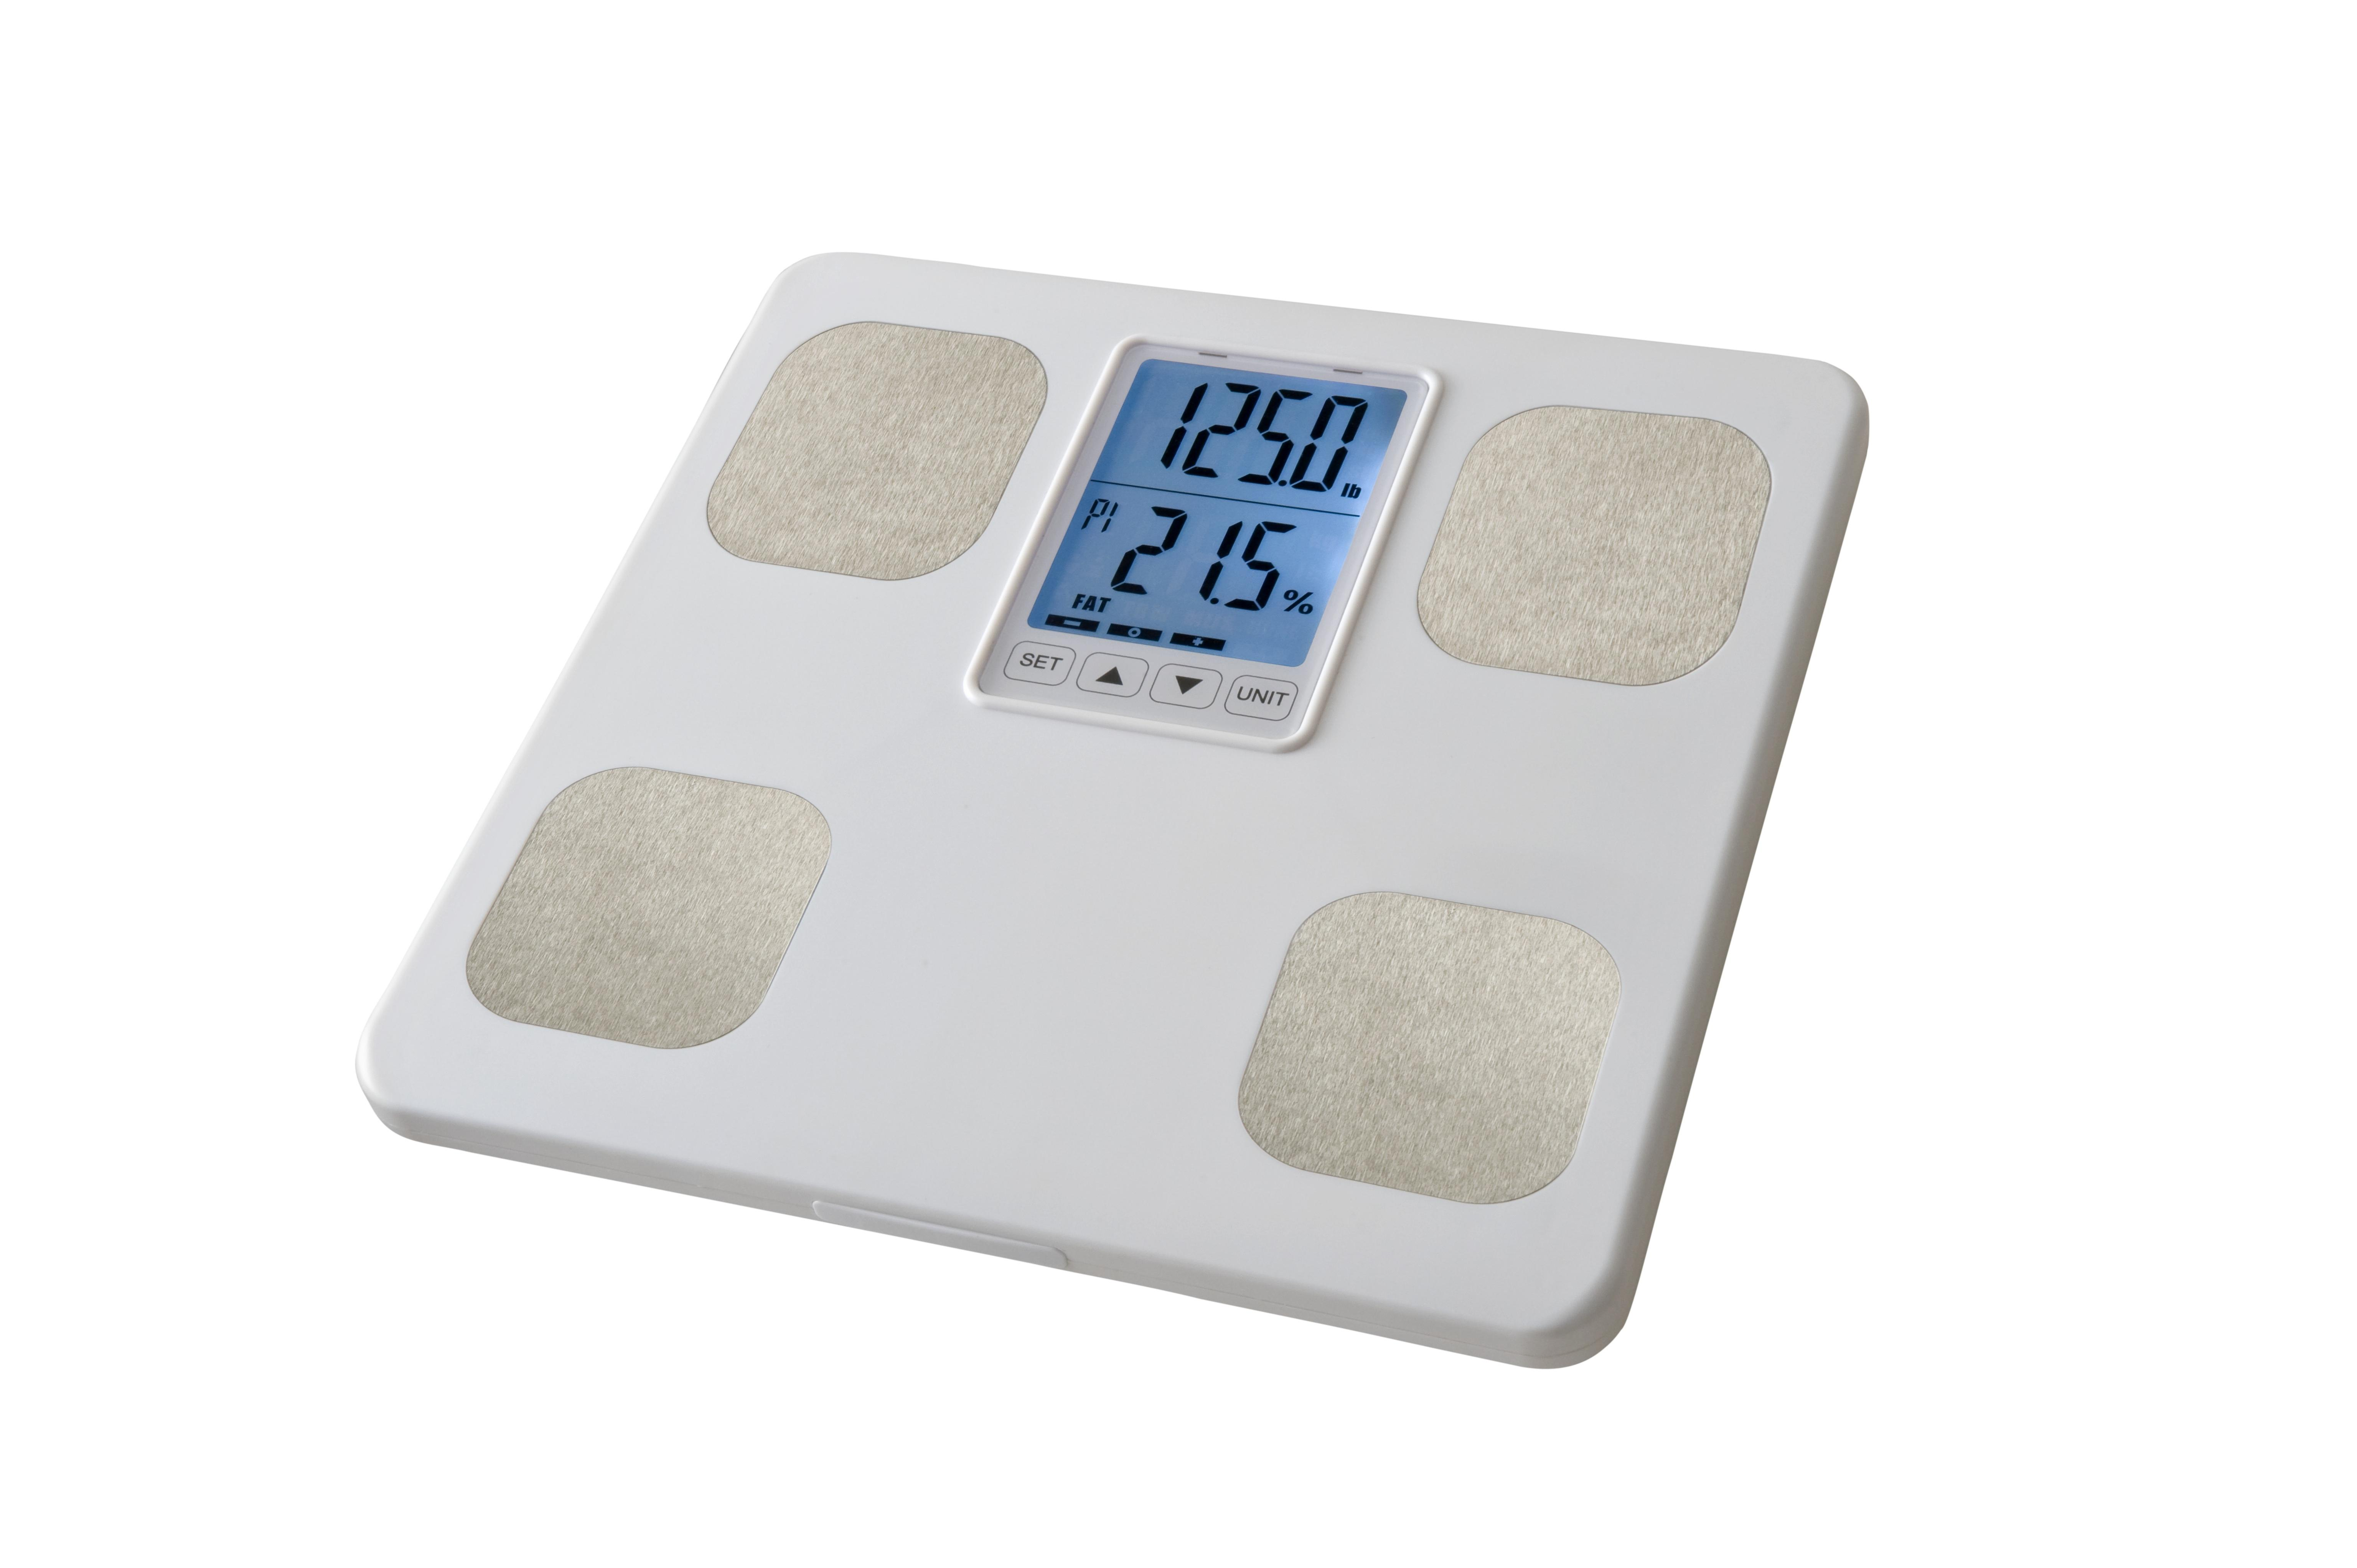 EKHO H-200 Scale / Body Fat Analyzer